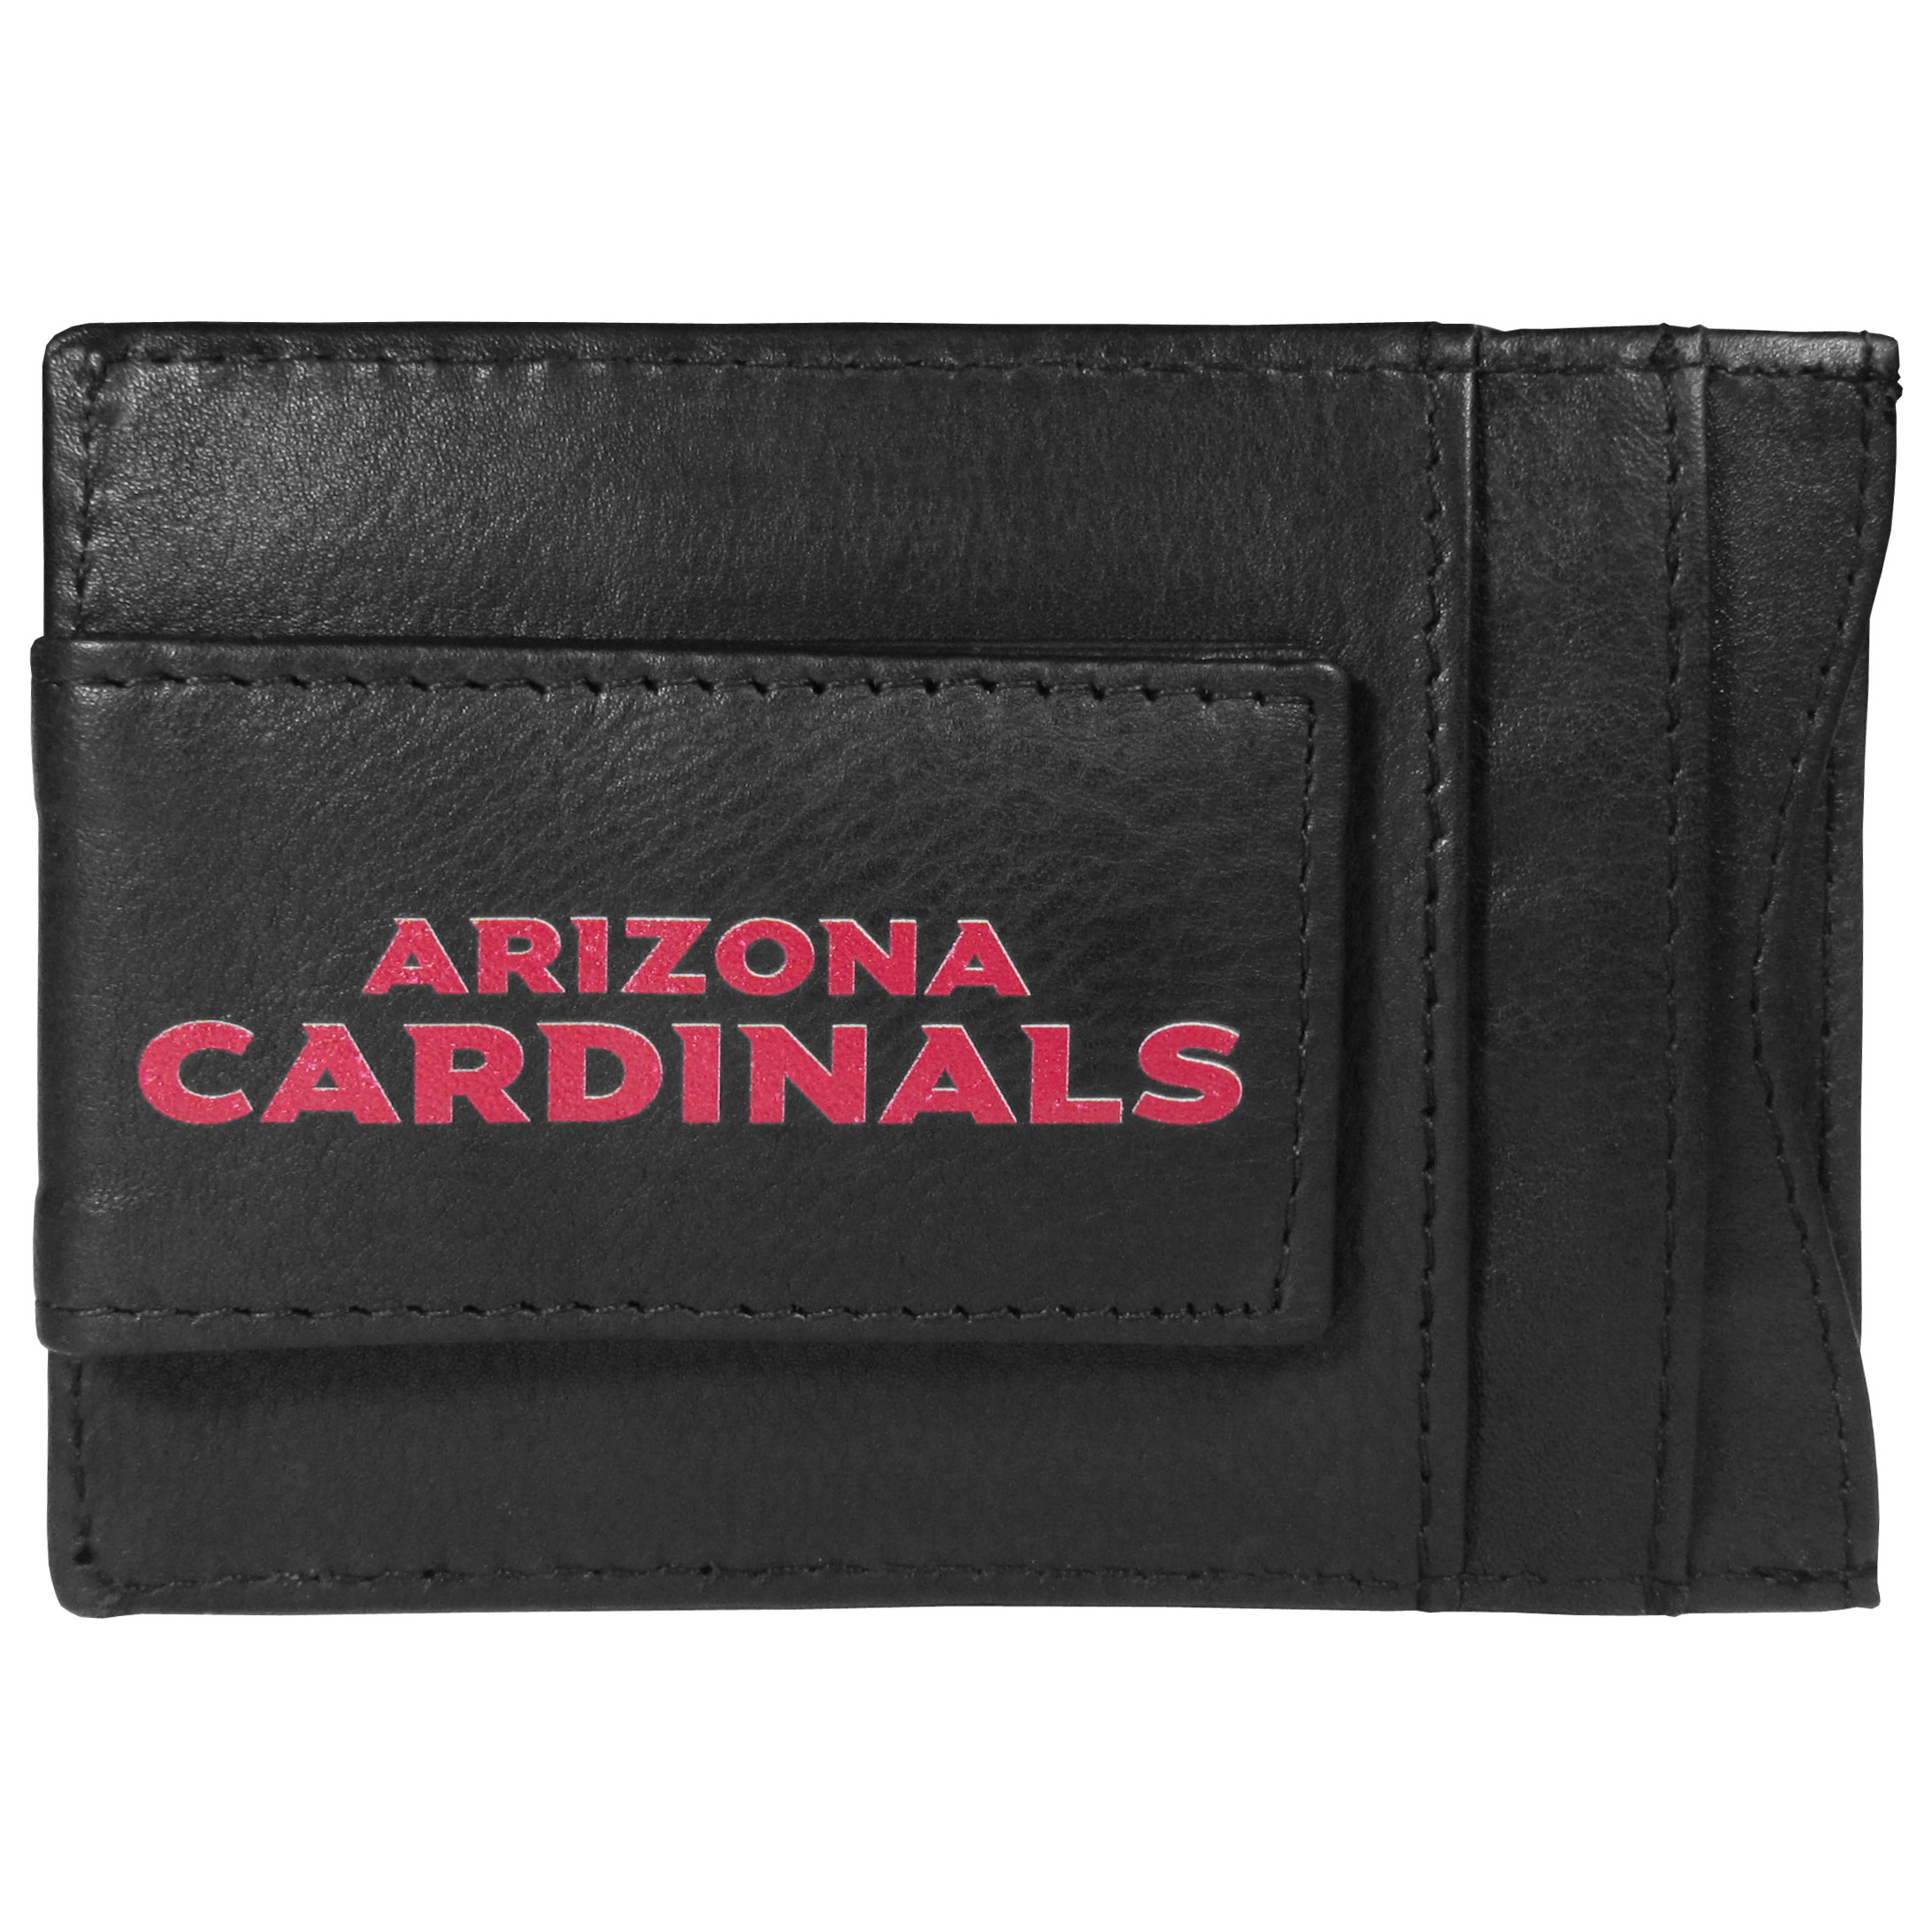 Arizona Cardinals Logo Leather Cash and Cardholder - This super slim leather wallet lets you have all the benefits of a money clip while keeping the organization of a wallet. On one side of this front pocket wallet there is a strong, magnetic money clip to keep your cash easily accessible and the?Arizona Cardinals team logo on the front. The versatile men's accessory is a perfect addition to your fan apparel.